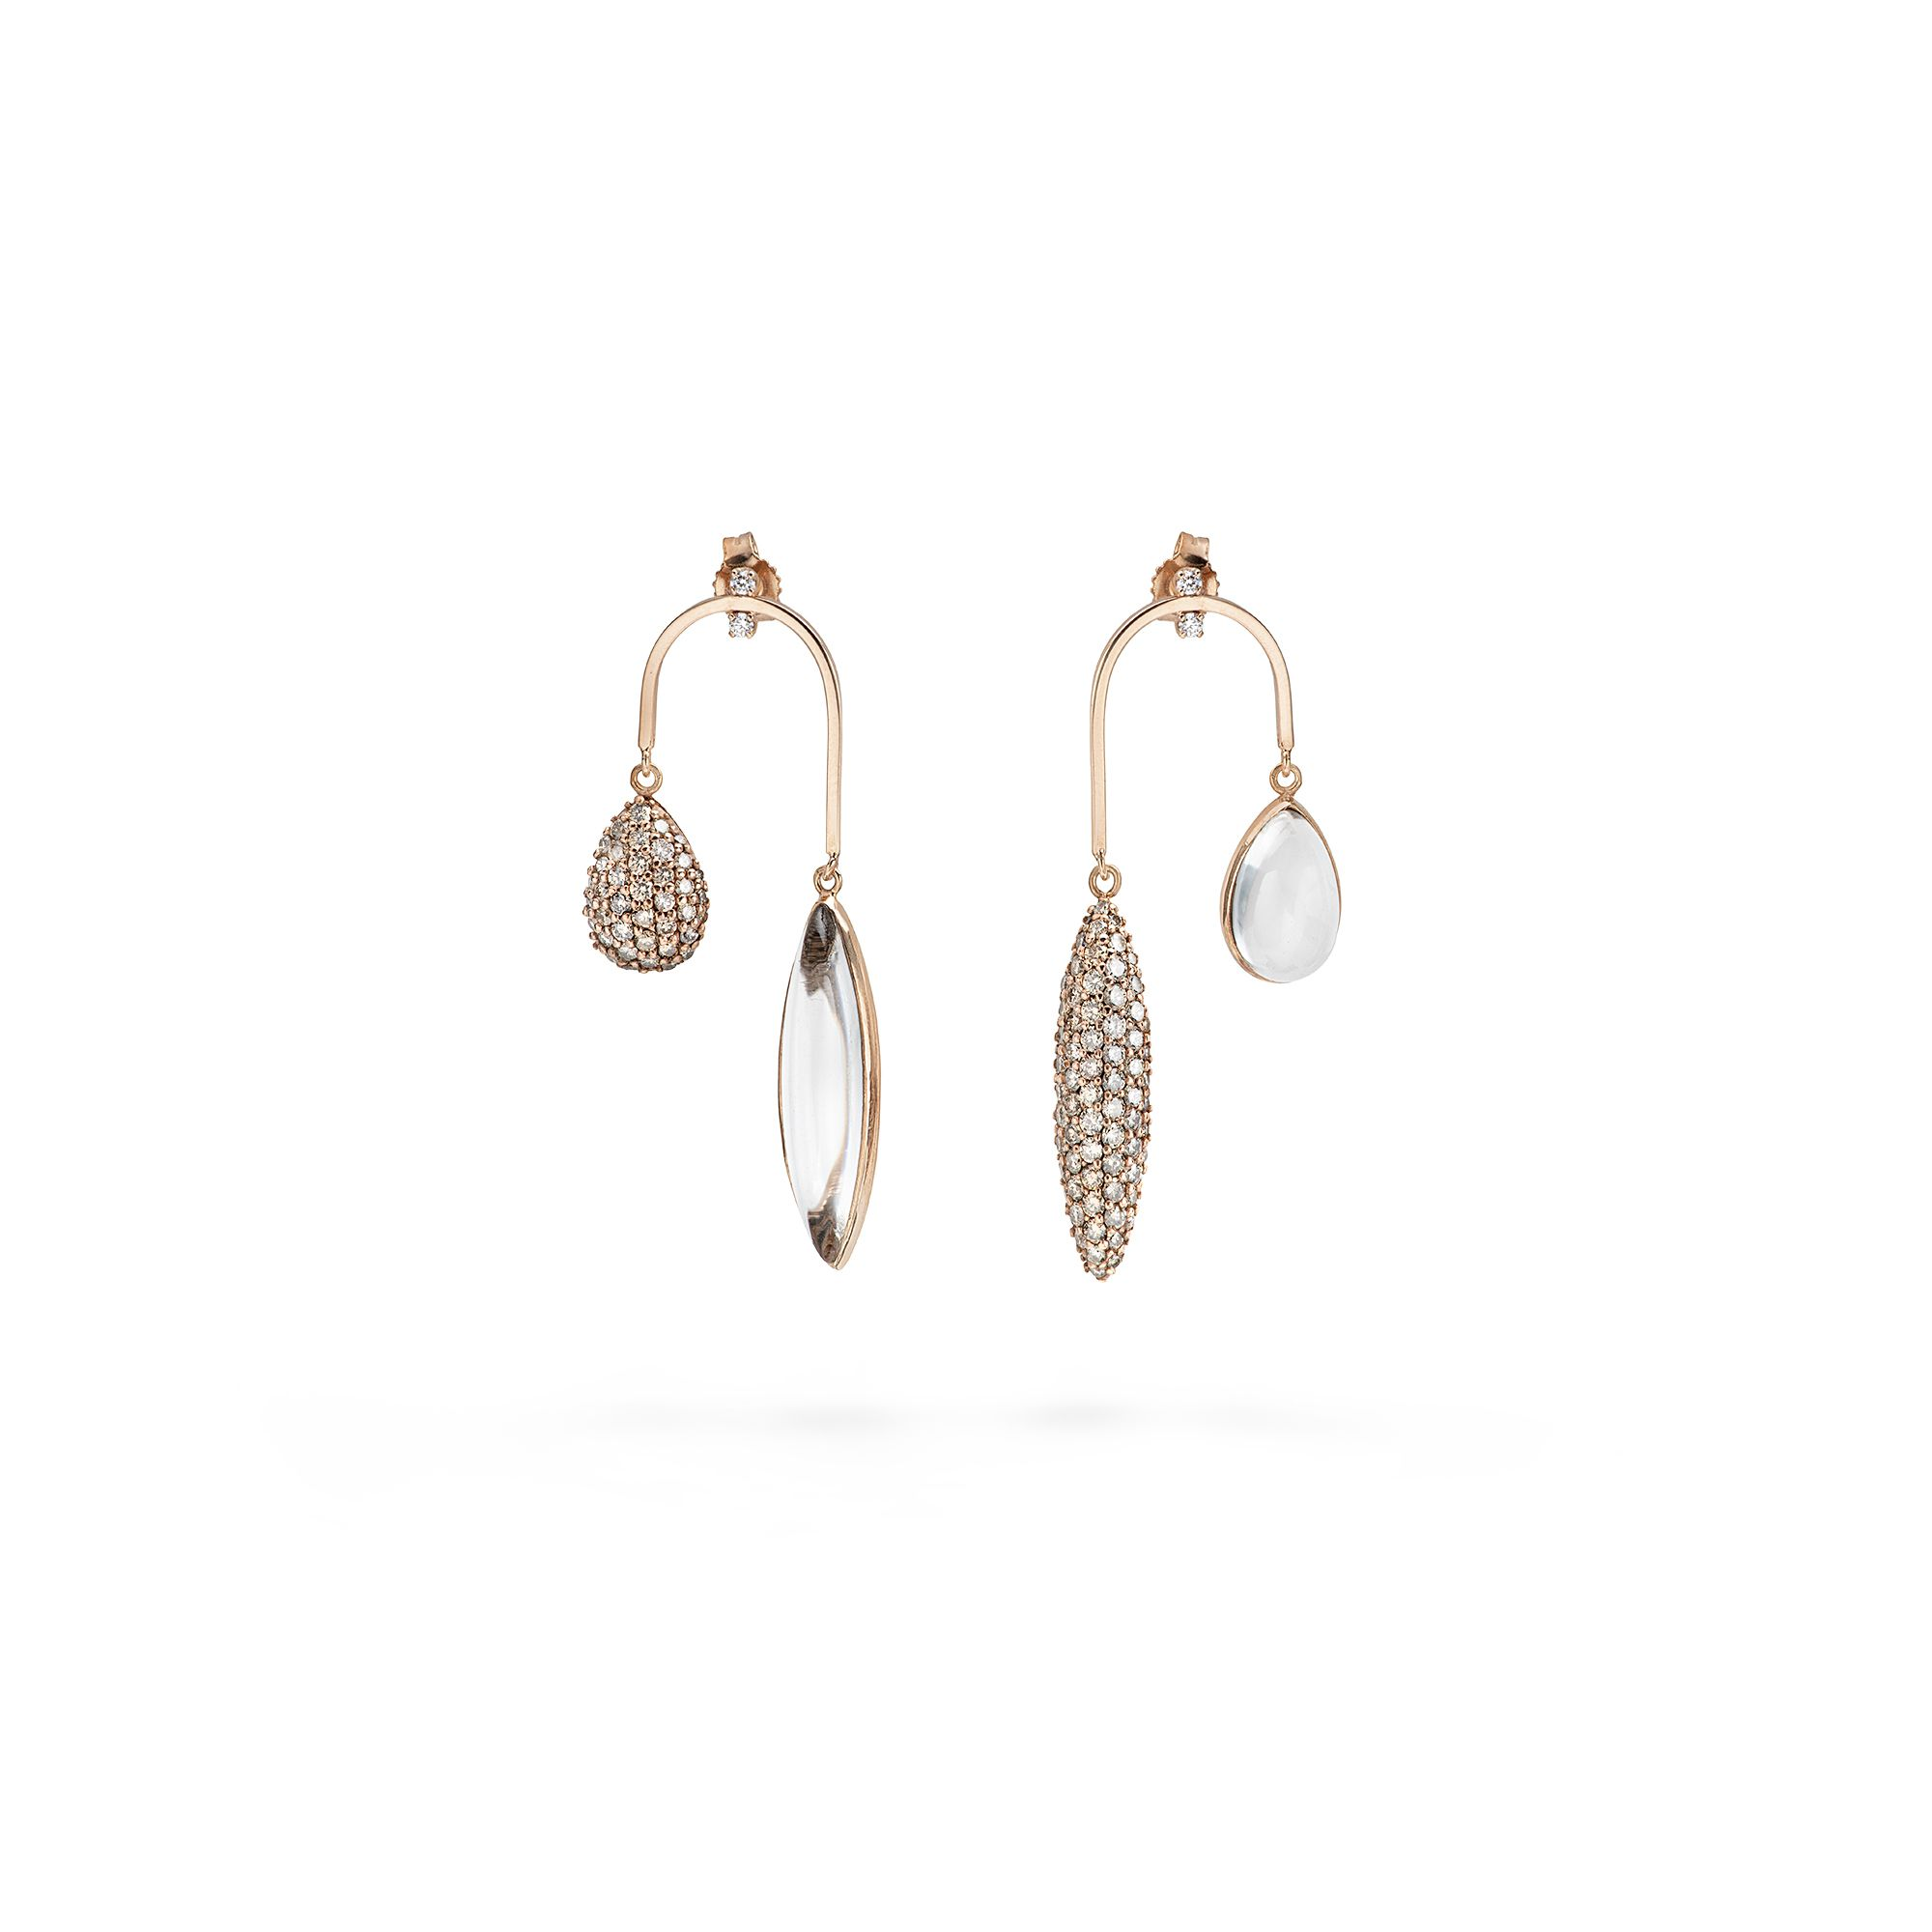 Curved earrings with diamonds Rose gold earrings with diamonds